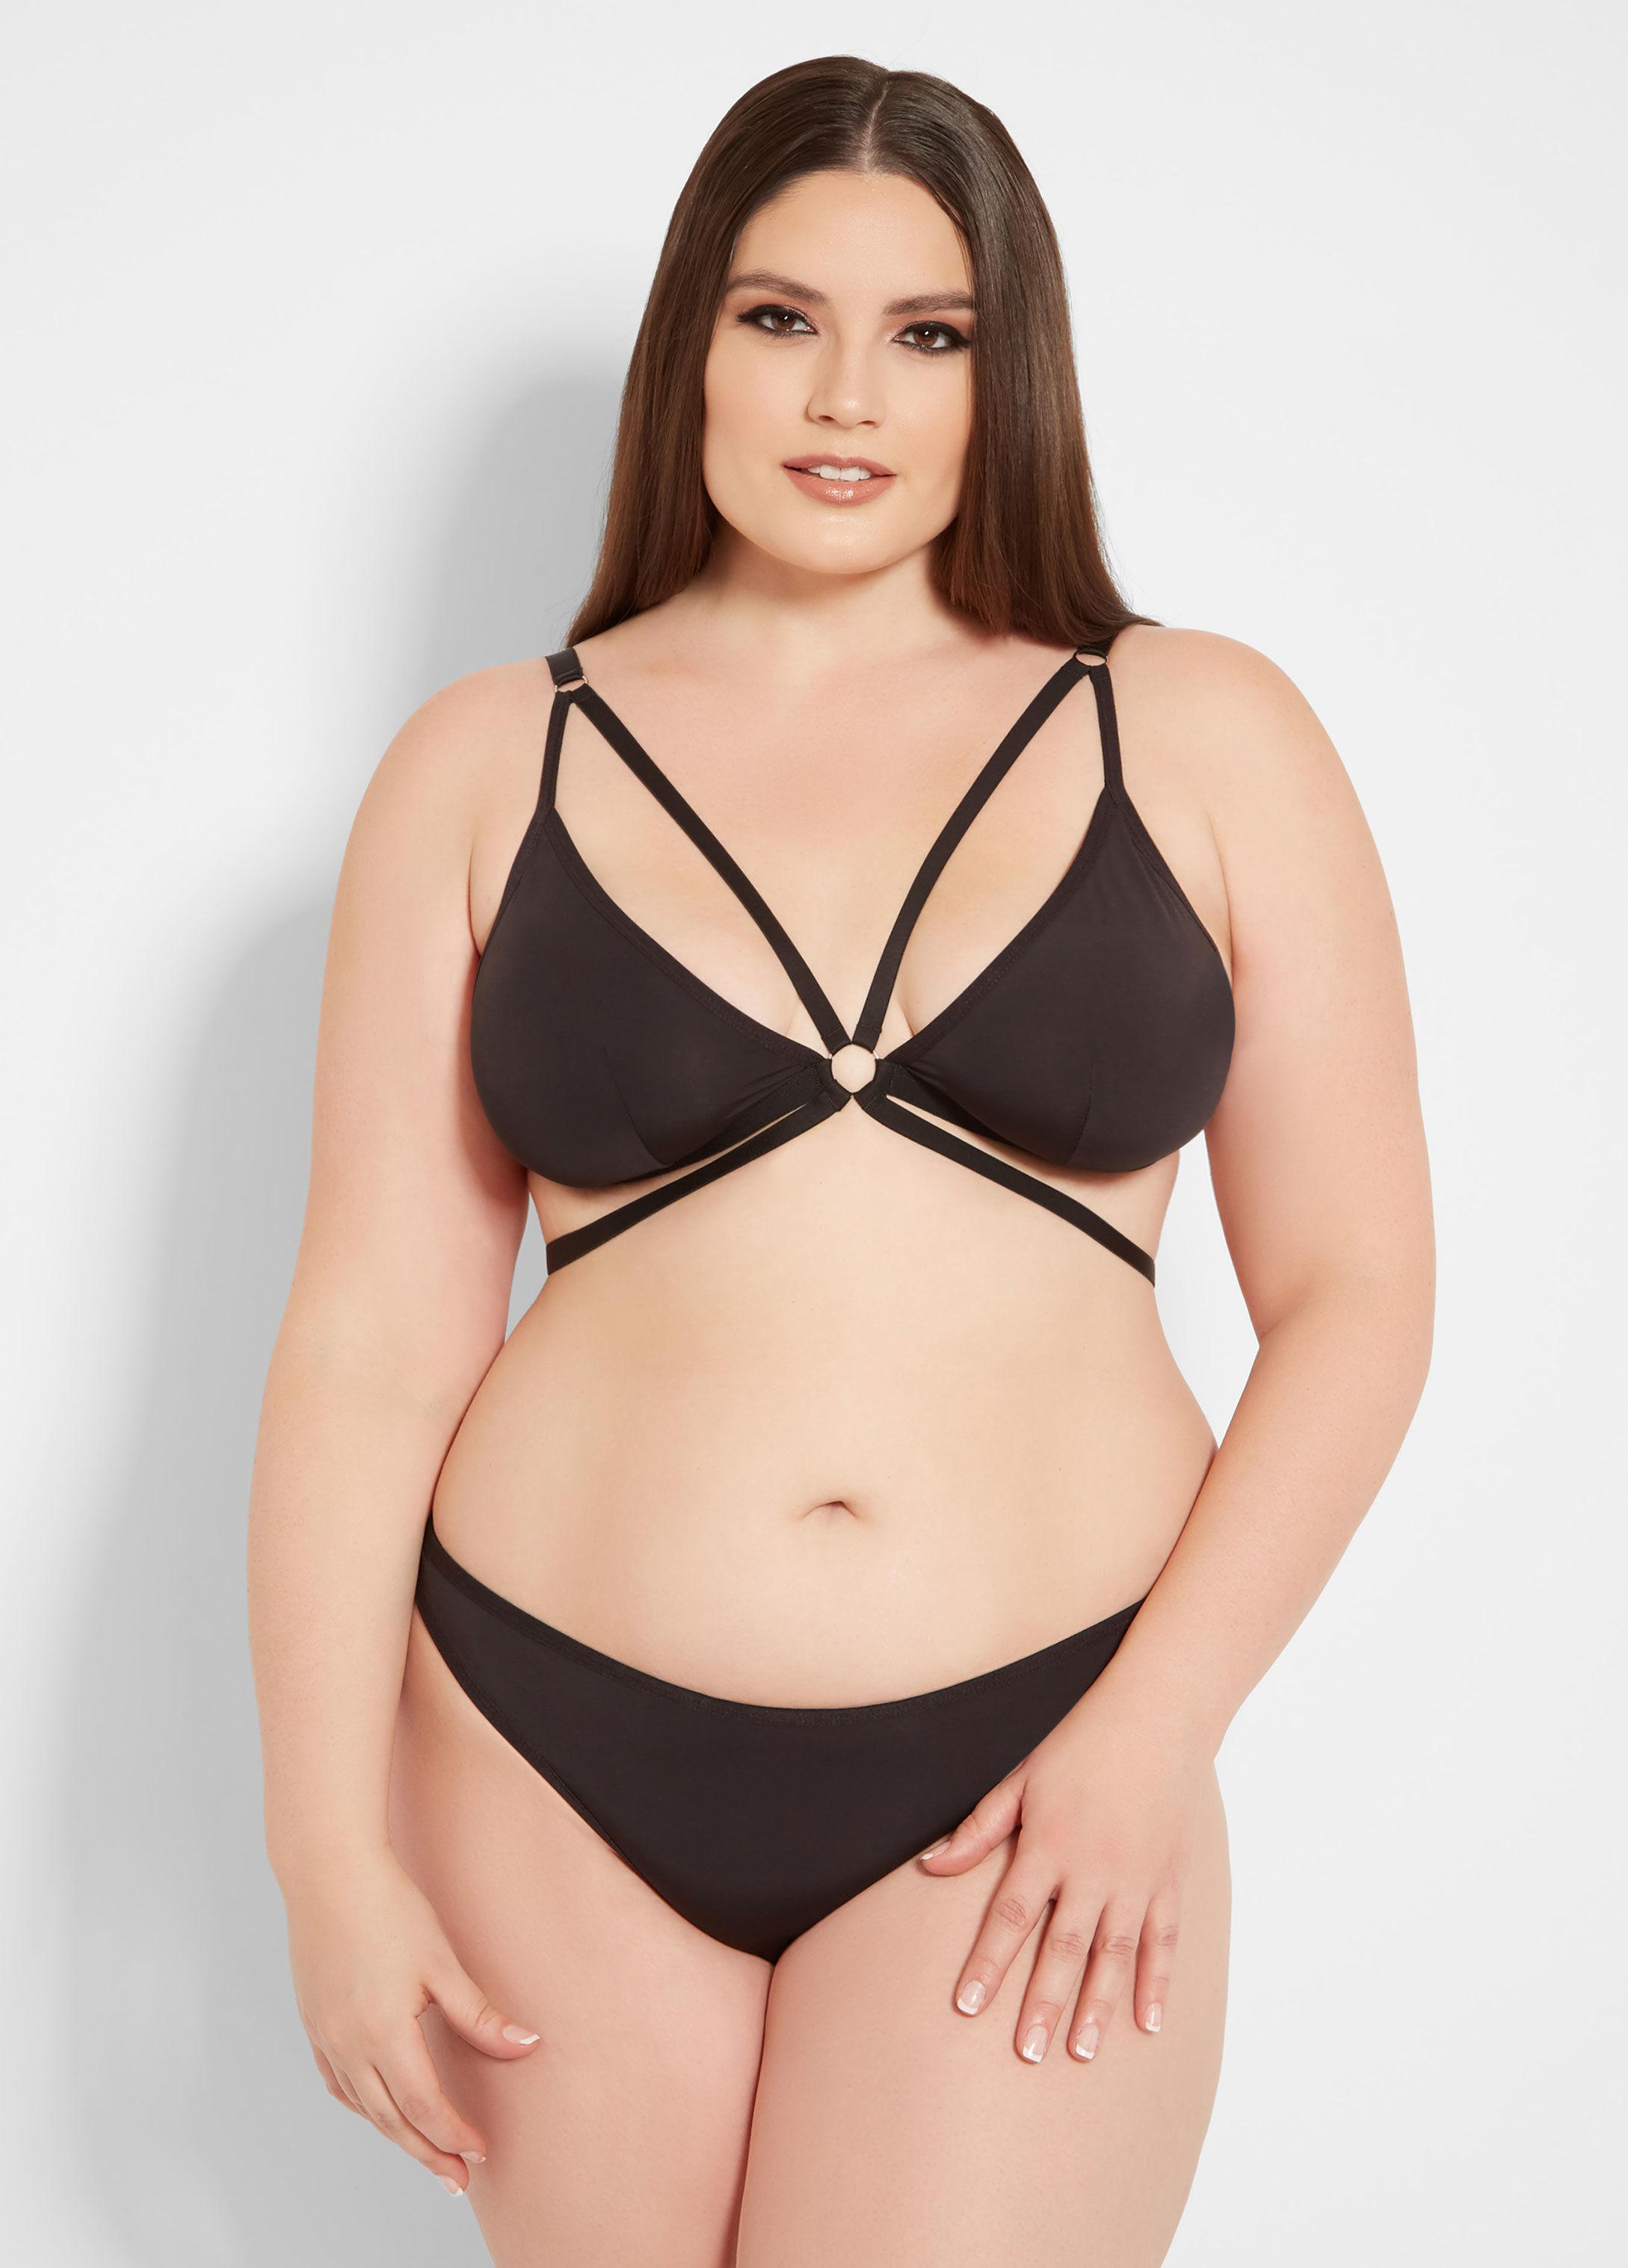 68a4cd33555a9 Lyst - Ashley Stewart Plus Size Two Piece Strappy Bra Set in Black